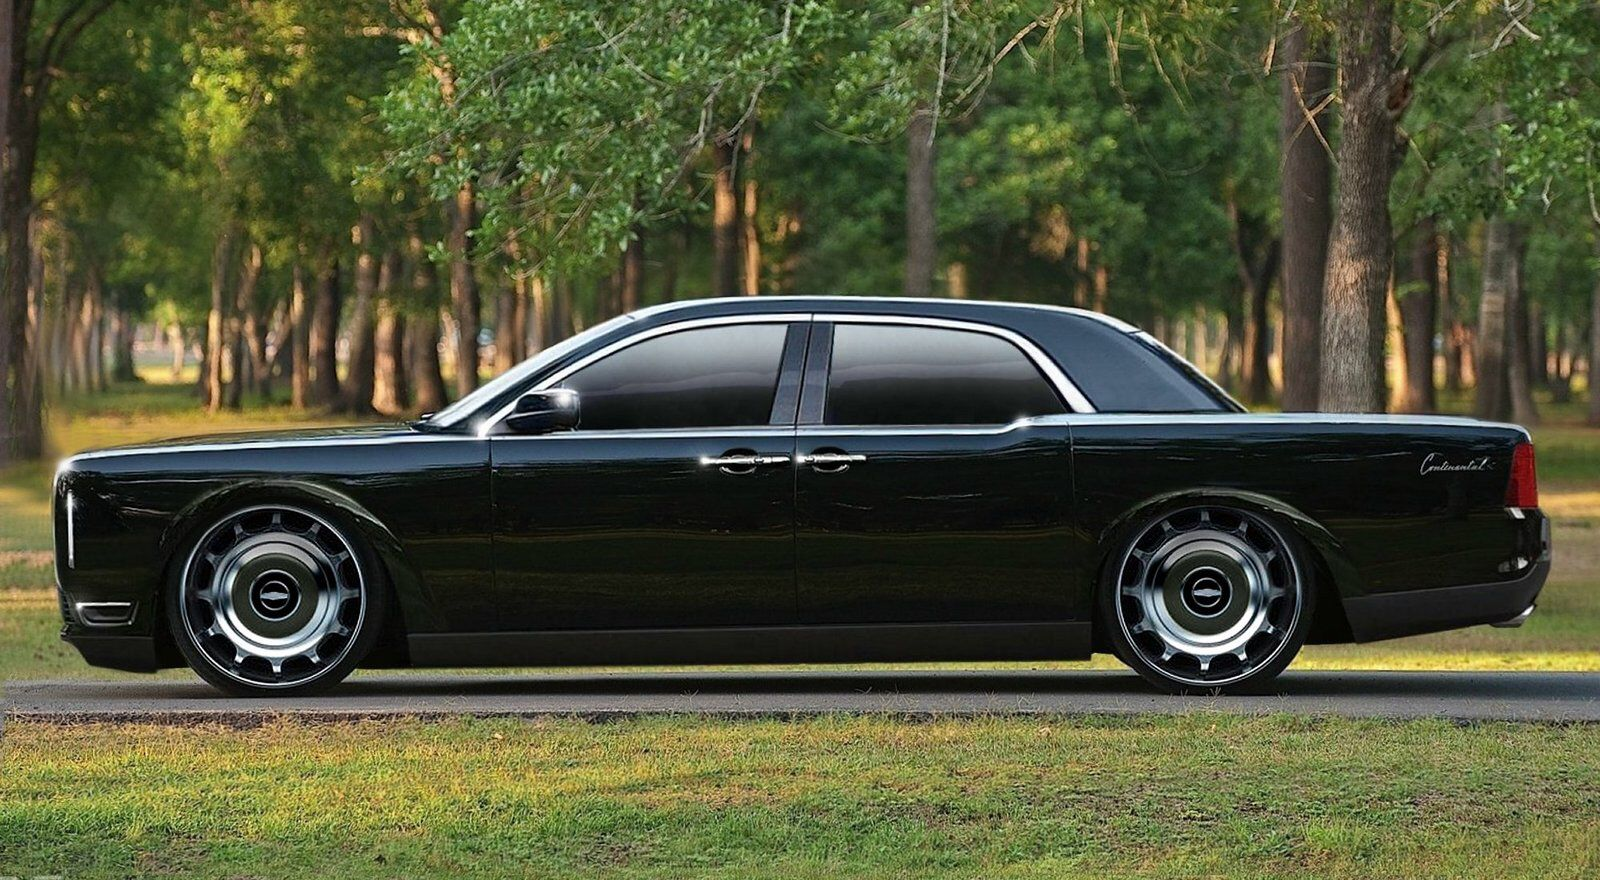 Hands Down My Ultimate Dream Car This Bad Boy Is Gangster